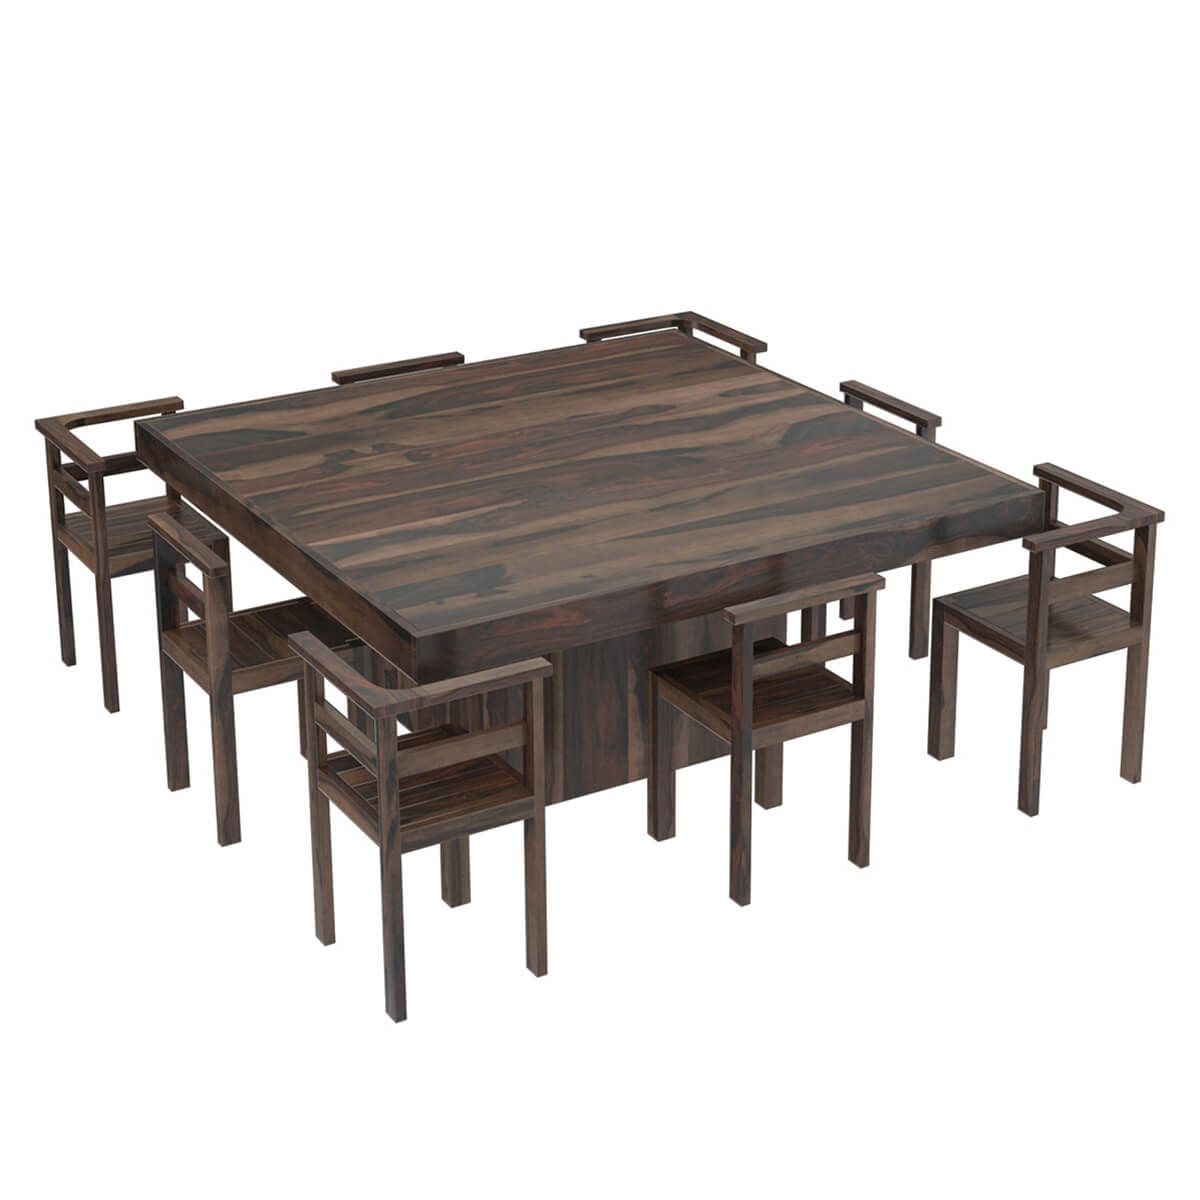 "Square Dining Table With Bench: Modern Rustic Solid Wood 64"" Square Pedestal Dining Table"